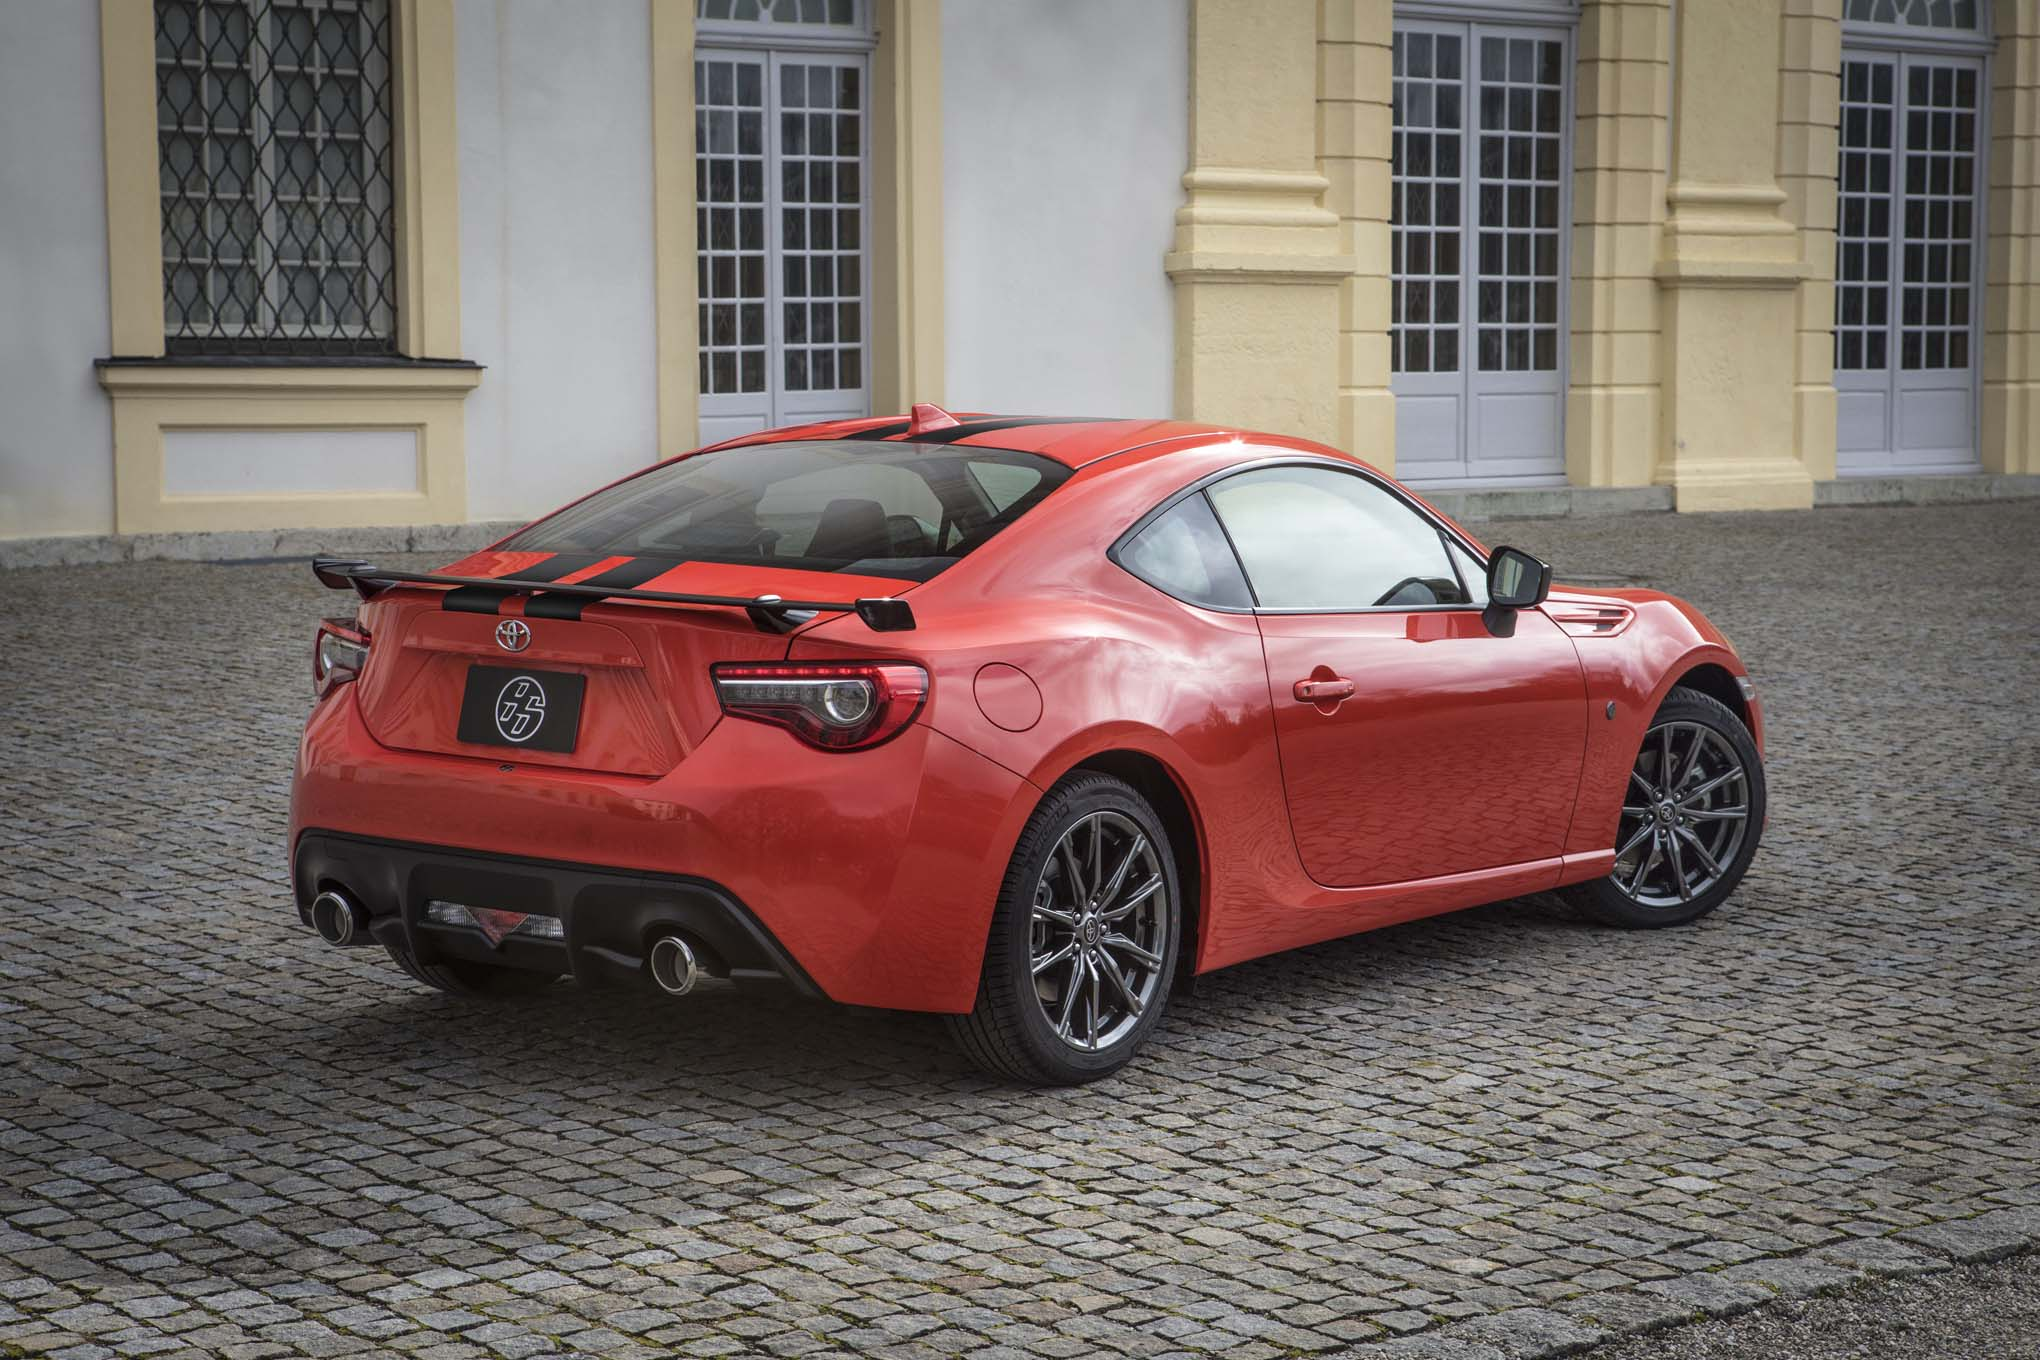 2017 Toyota 86 860 Special Edition rear three quarter